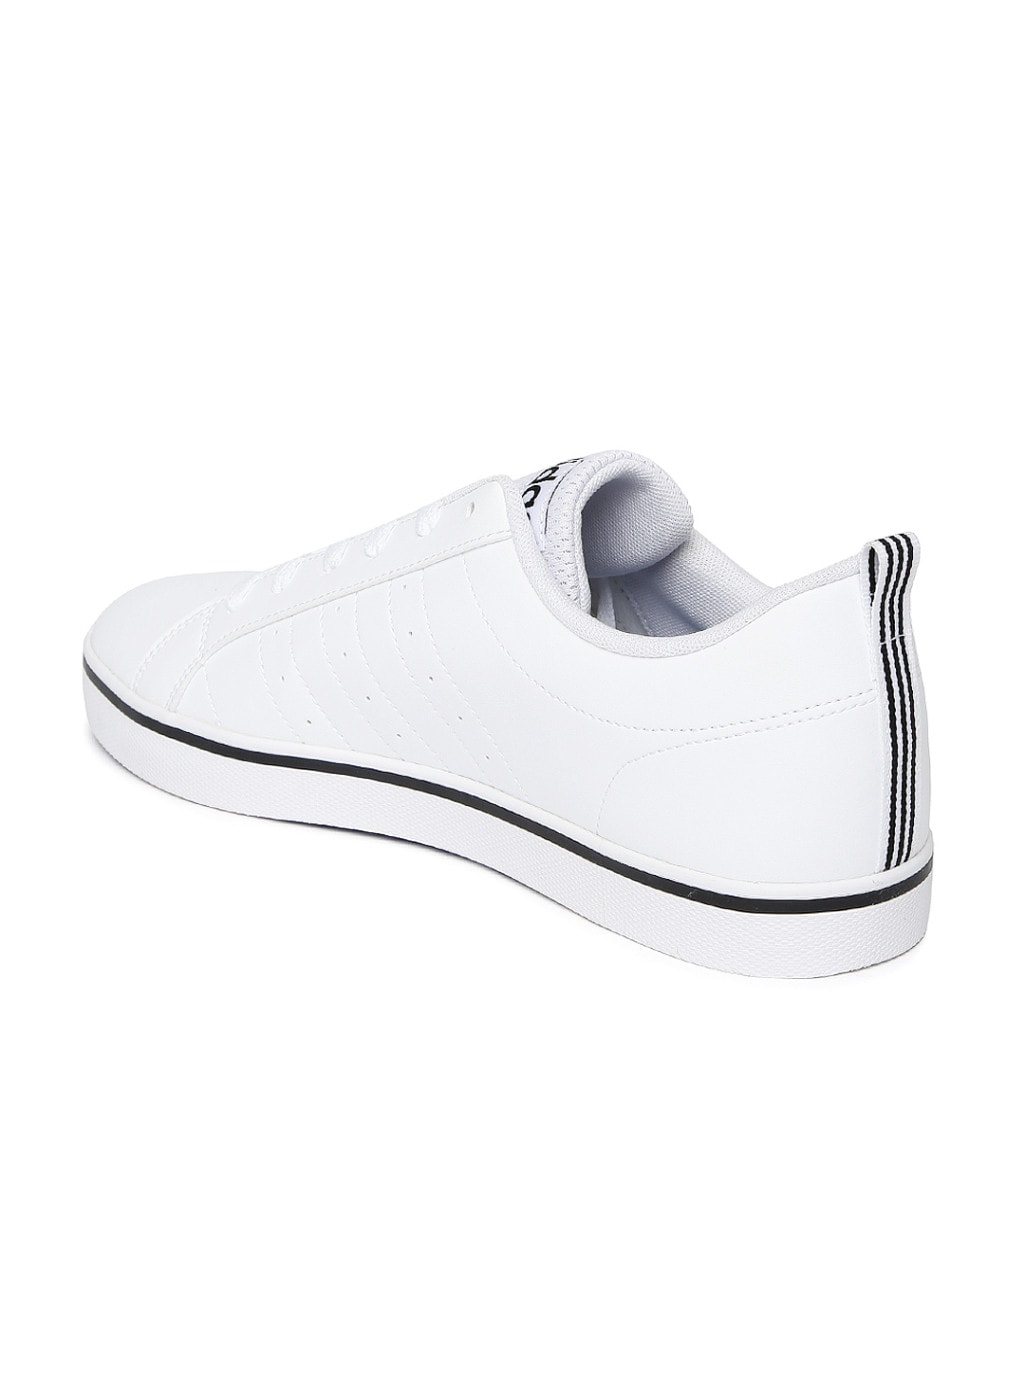 Buy ADIDAS NEO White Solid Pace VS Sneakers Online 5472422